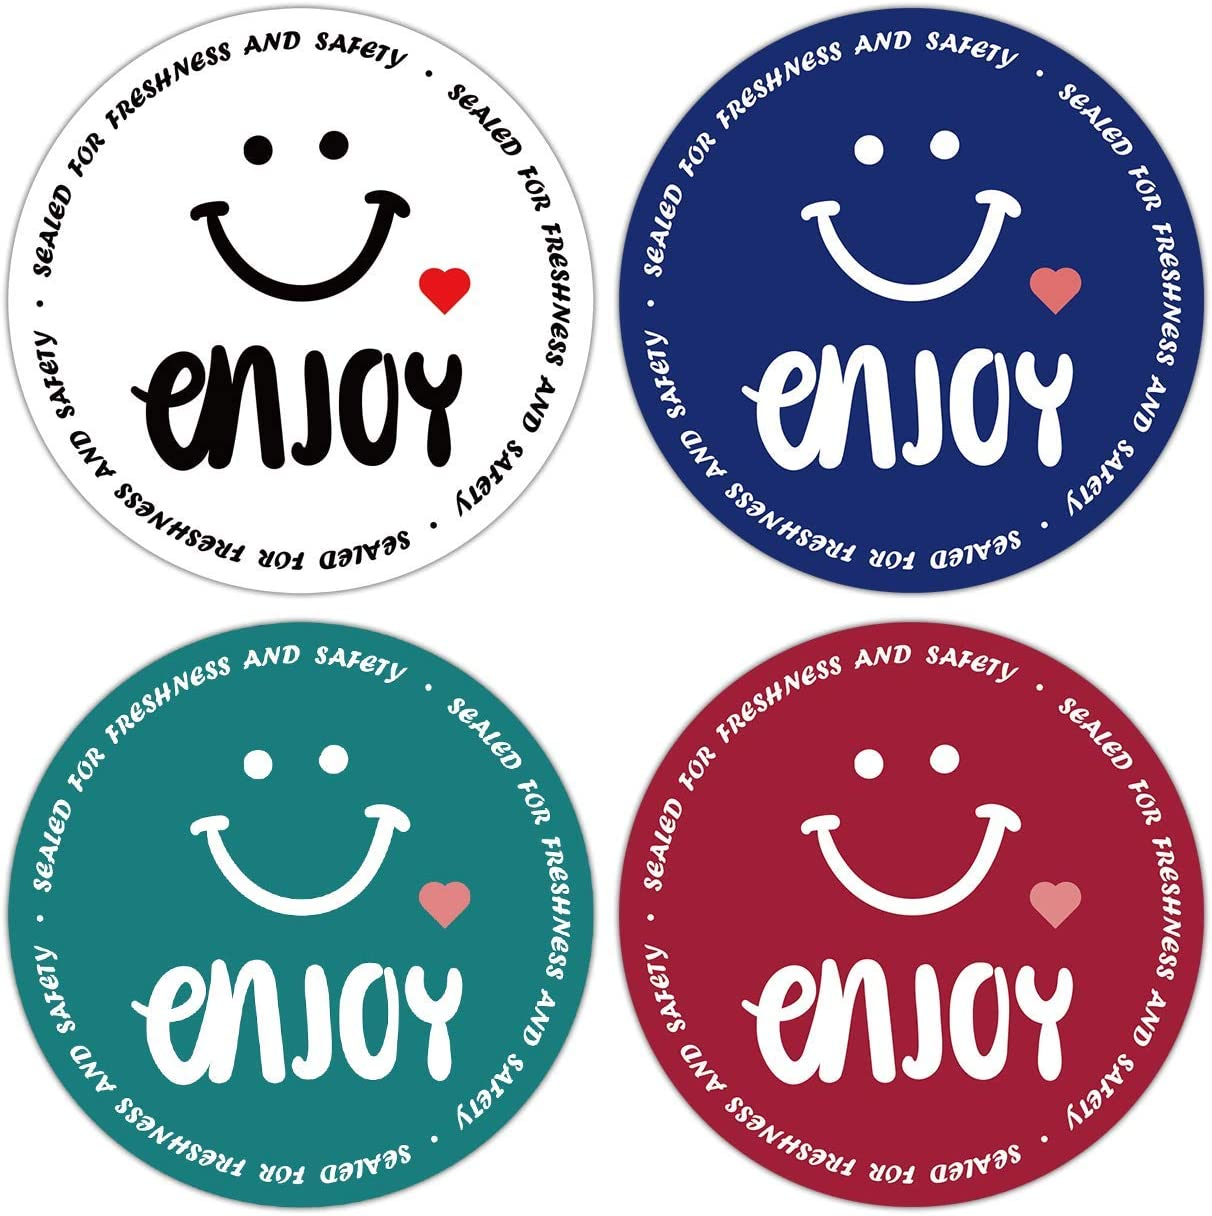 Food Delivery Sealing Stickers Roll, Sealed for Freshness and Safety Labels for Food Service, Enjoy Sticker, Catering Business, and Bakery Packaging ect. (500pc/Roll) (2'', Smile #1)